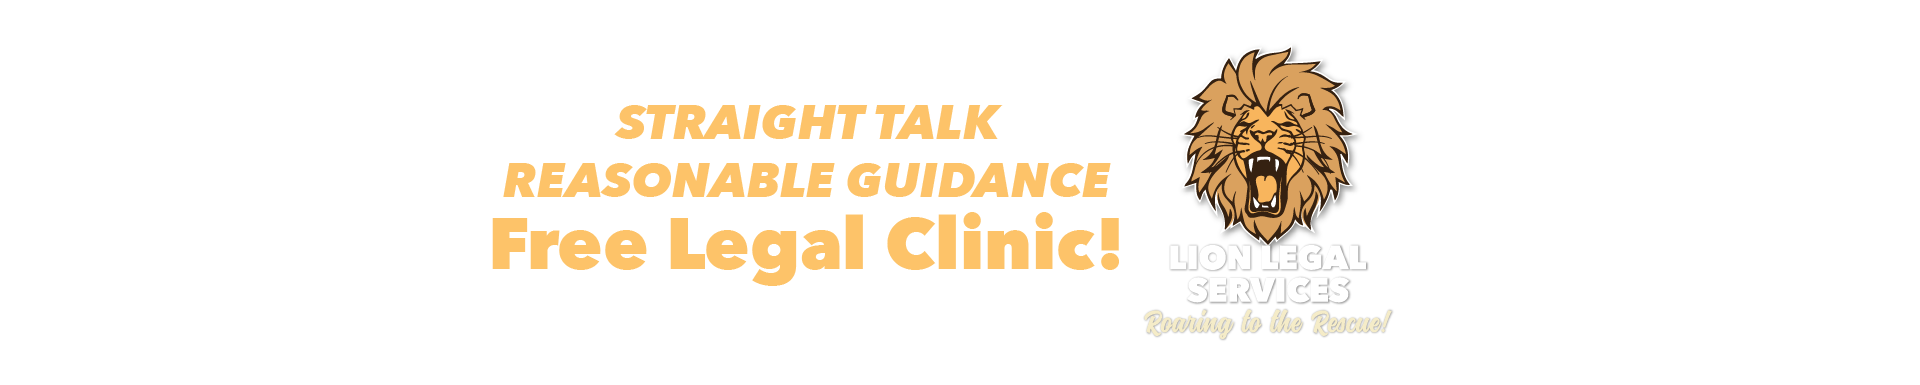 Free Legal Clinic 1